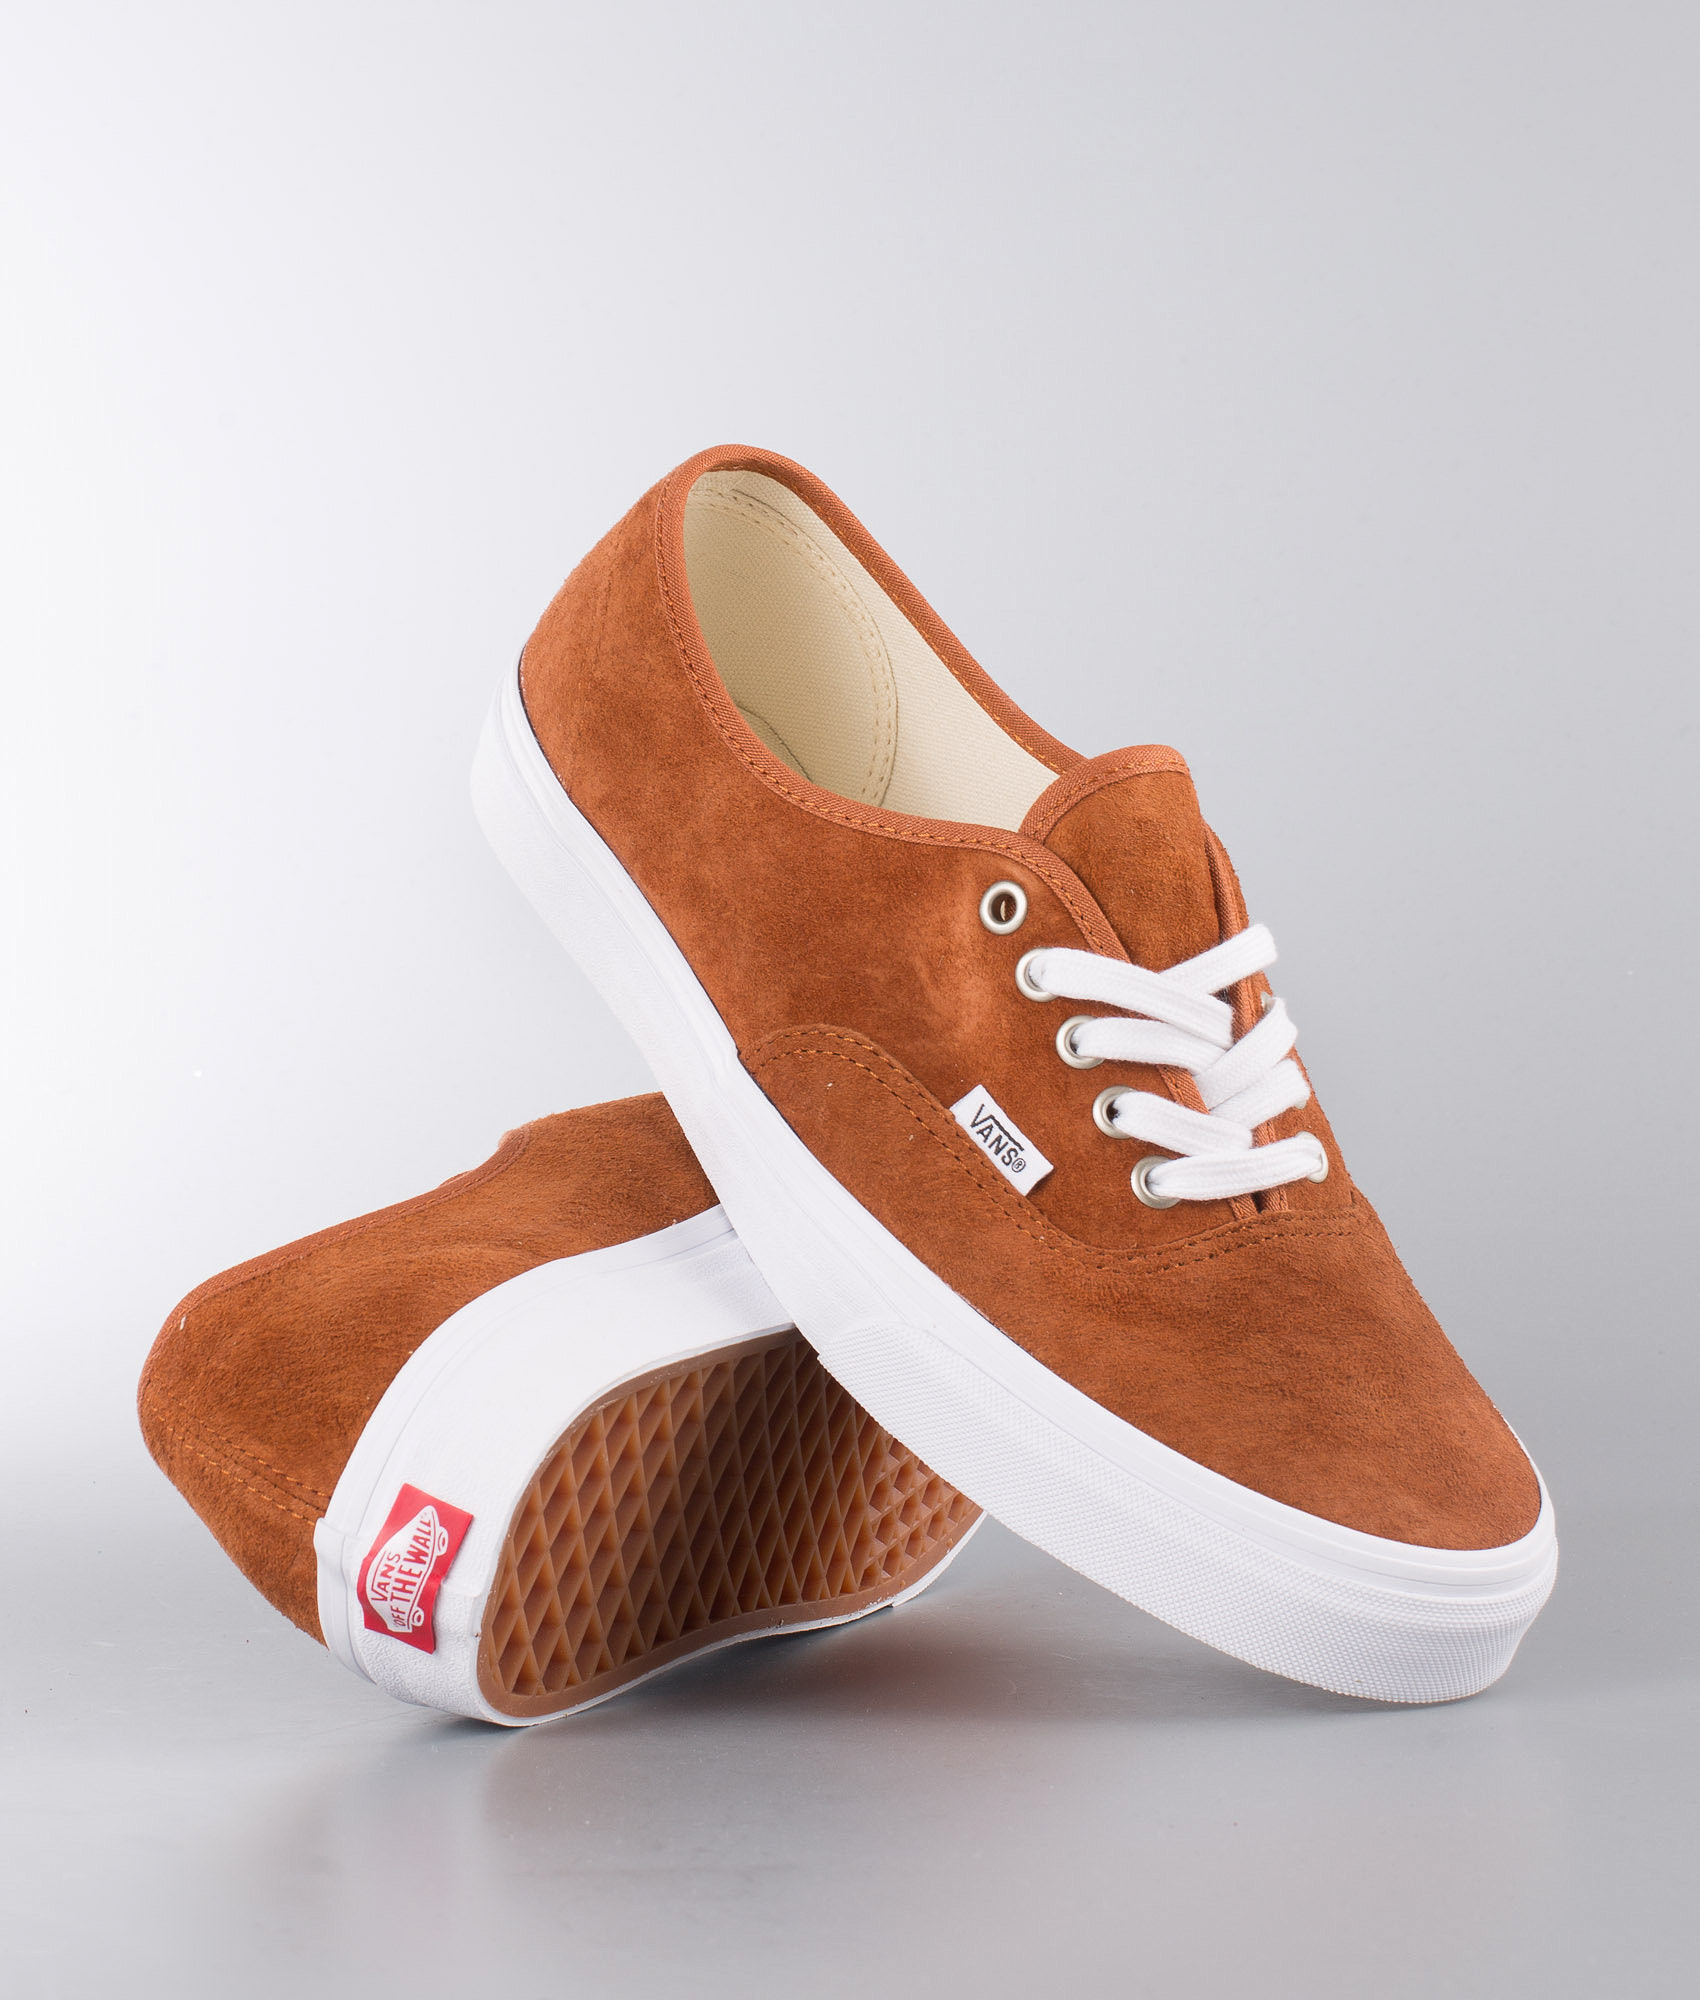 cba544c3a733 Vans Authentic Shoes (Pig Suede) Leather Brown True White ...